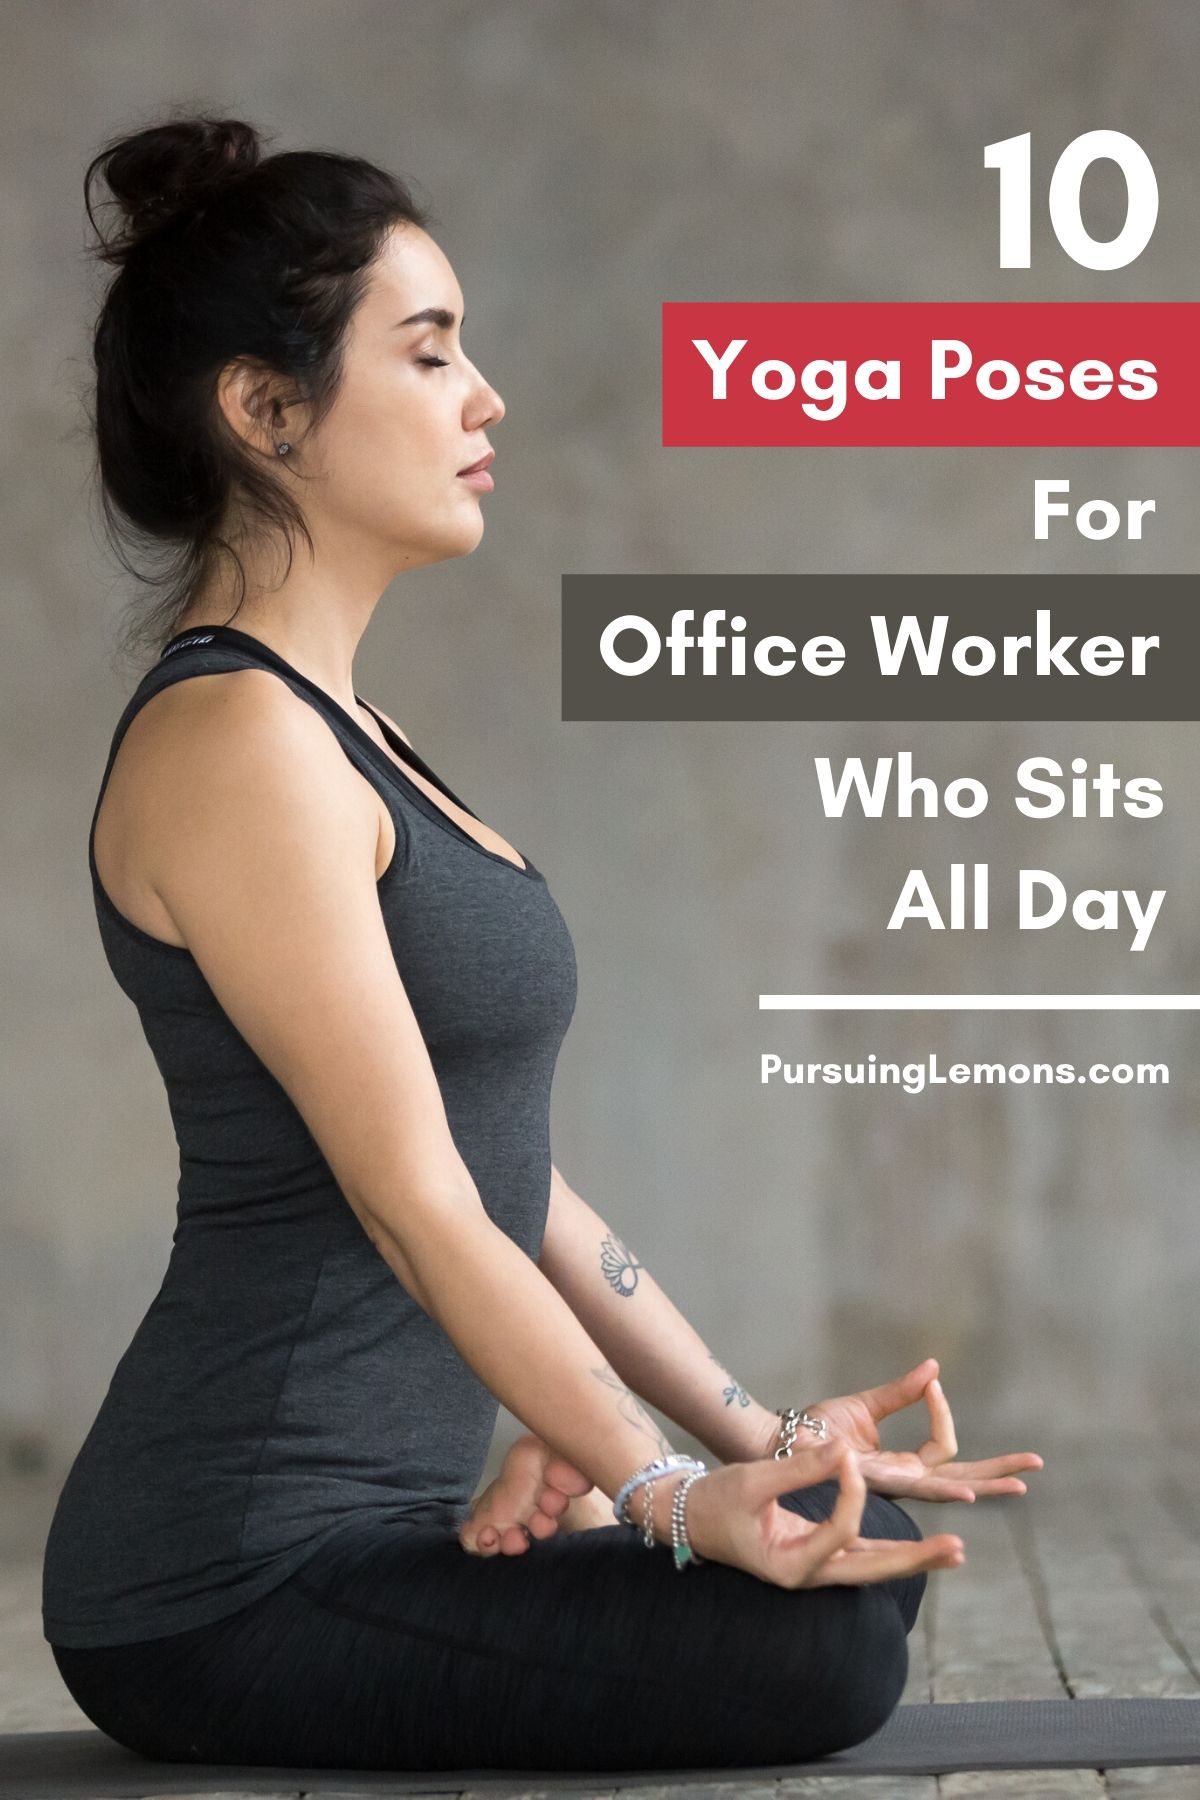 10 Yoga Poses For Office Workers Who Sits All Day| If you sit most of the time at work, you might experience back pain, tight muscles or hunching. This yoga sequence includes neck stretches, hip stretches and back stretches that will help with relieving lower back pain, hip pain,  neck pain, and any other discomfort you may have from your desk job. #yoga #officeworkers #yogaforofficeworkers #yogaforwork